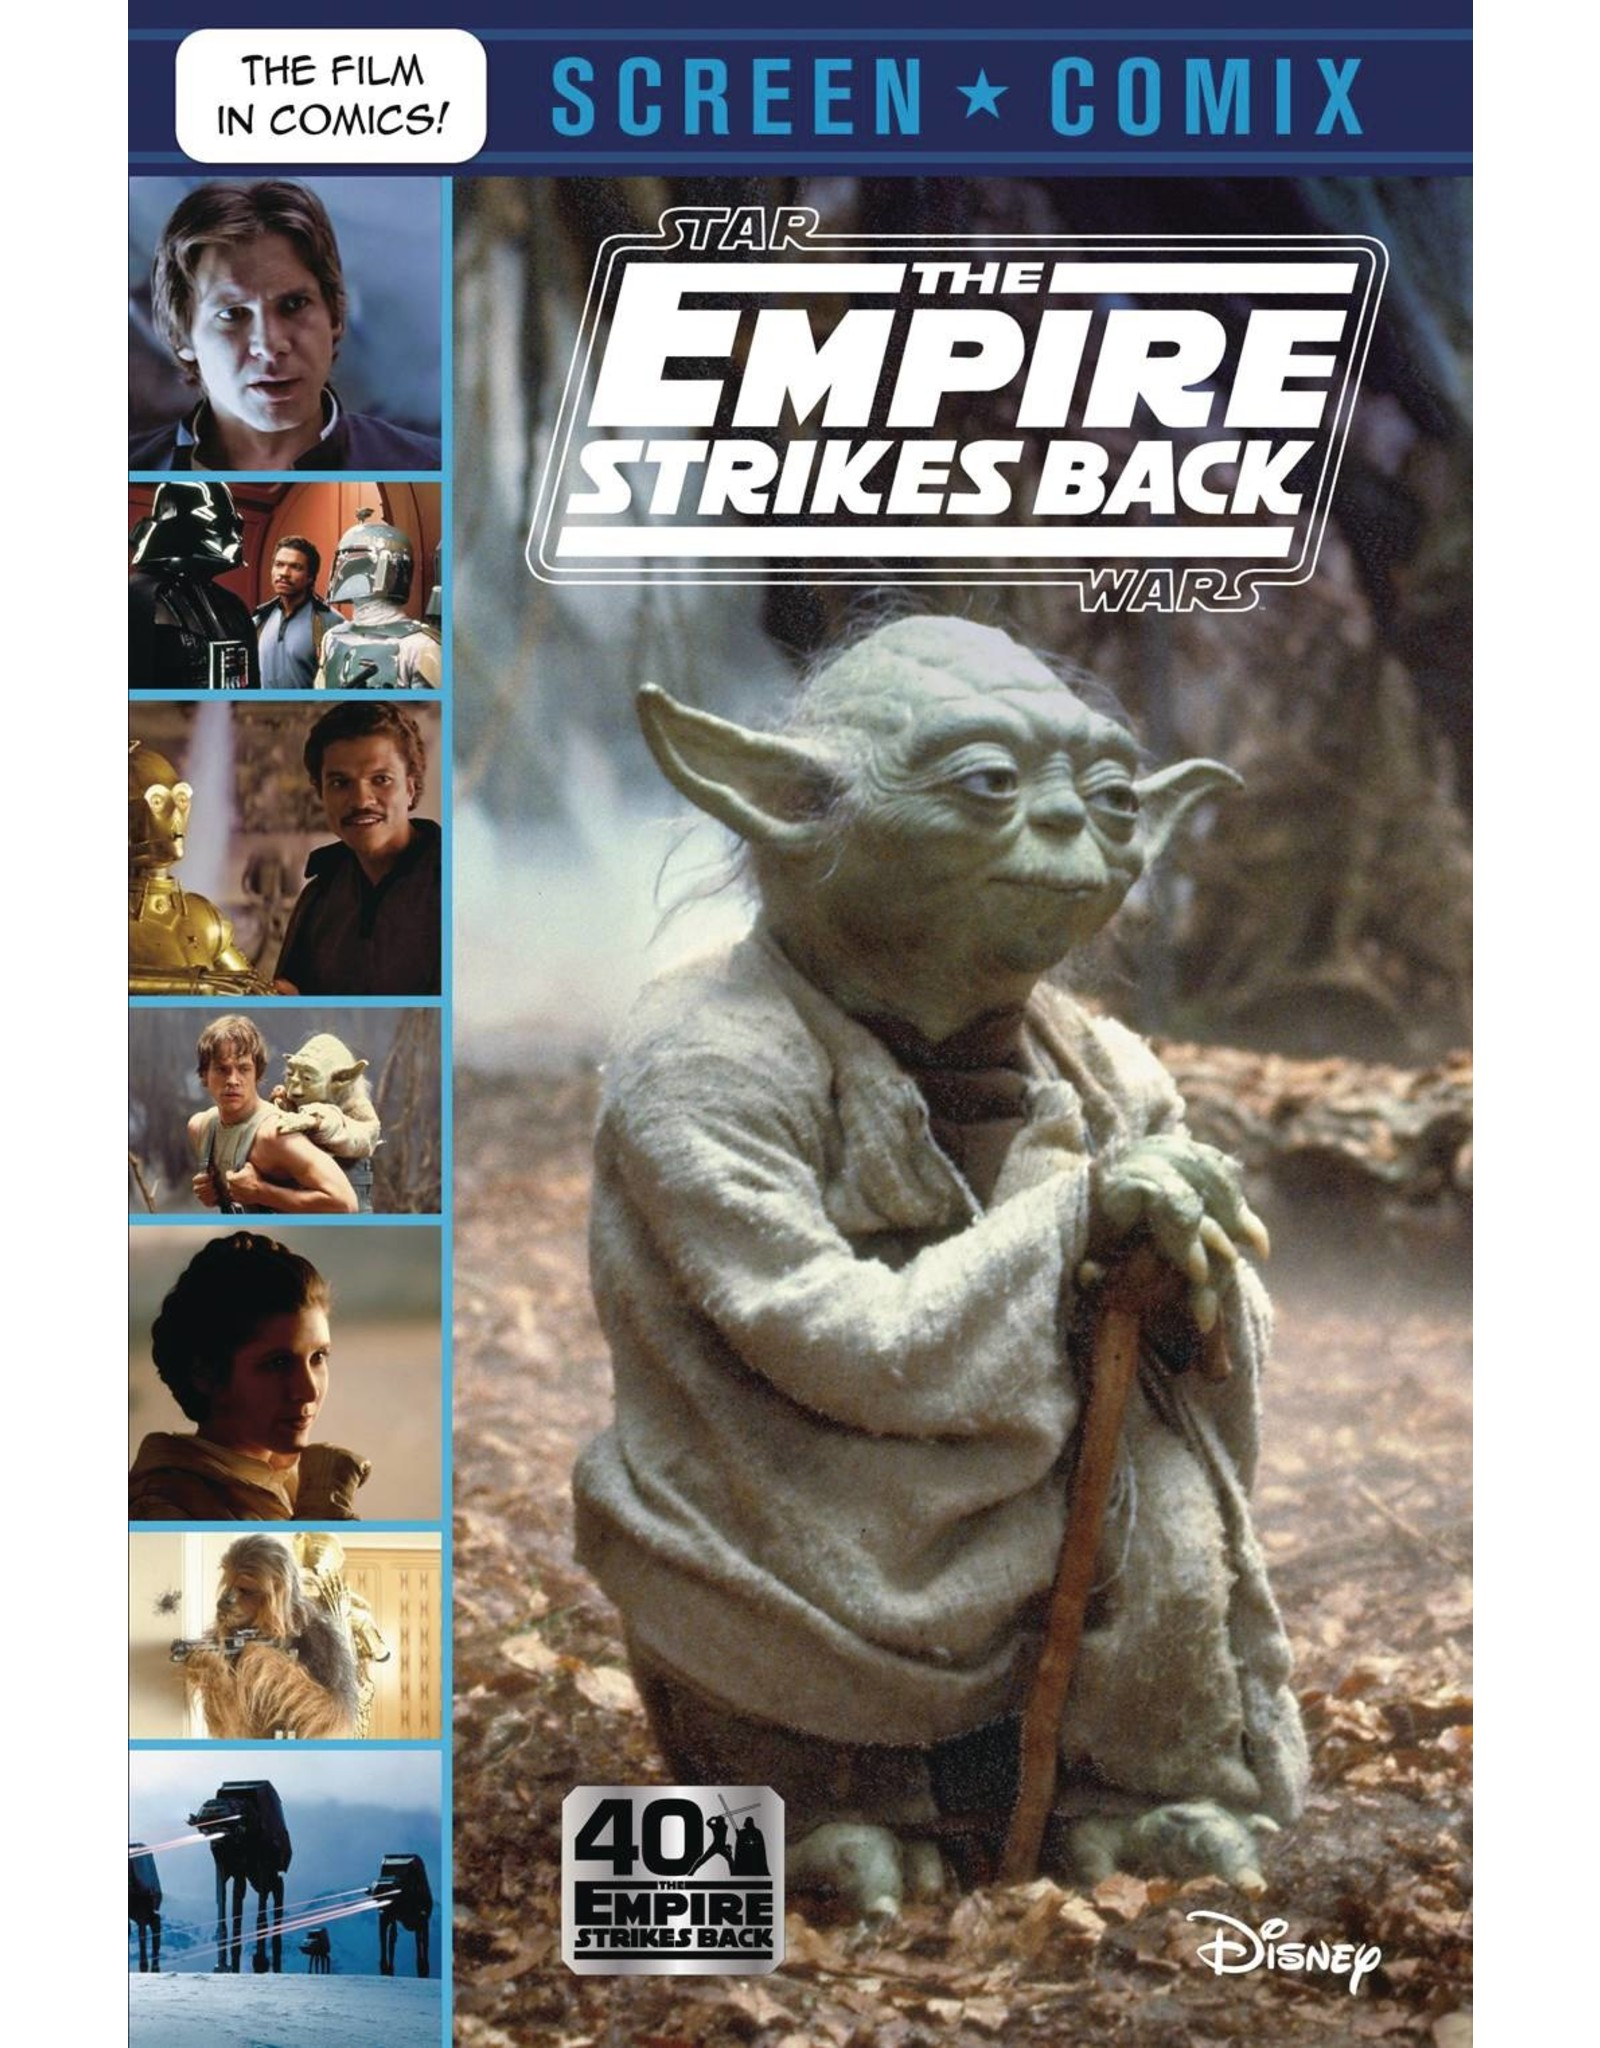 STAR WARS EMPIRE STRIKES BACK SCREEN COMIX